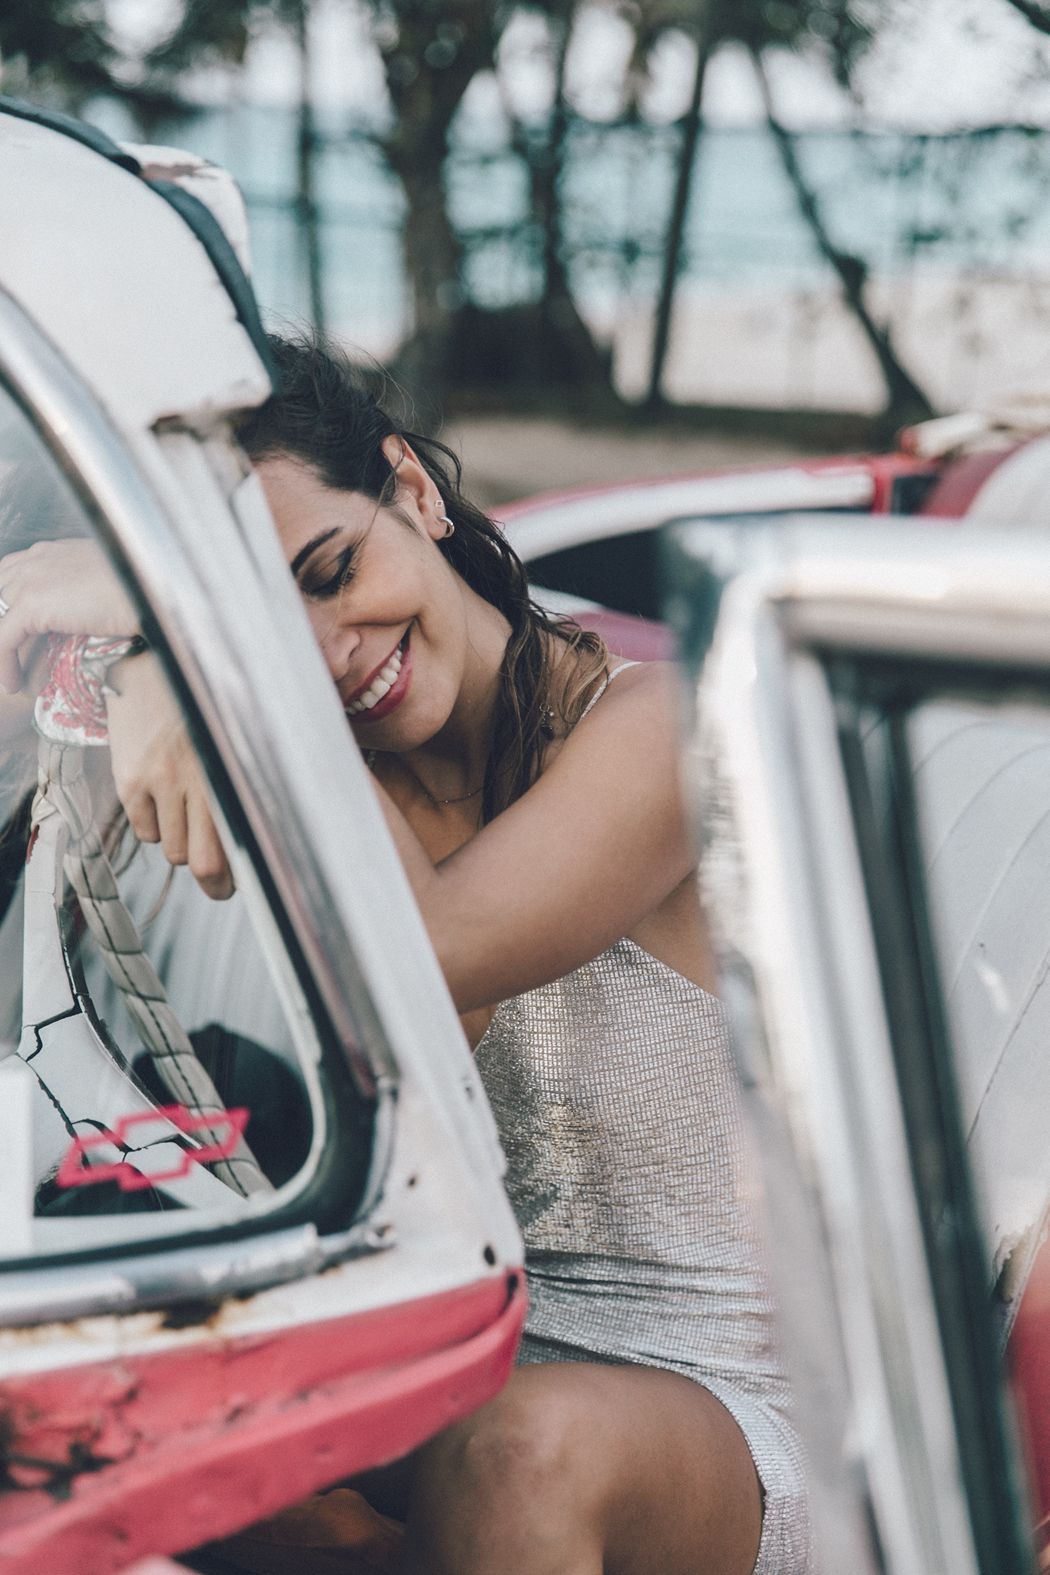 Cuba-Varadero-Vintage_Car-Silver_Dress-Floral_Scarf-Isabel_Marant_Sandals-Outfit-COllage_On_The_Road-38